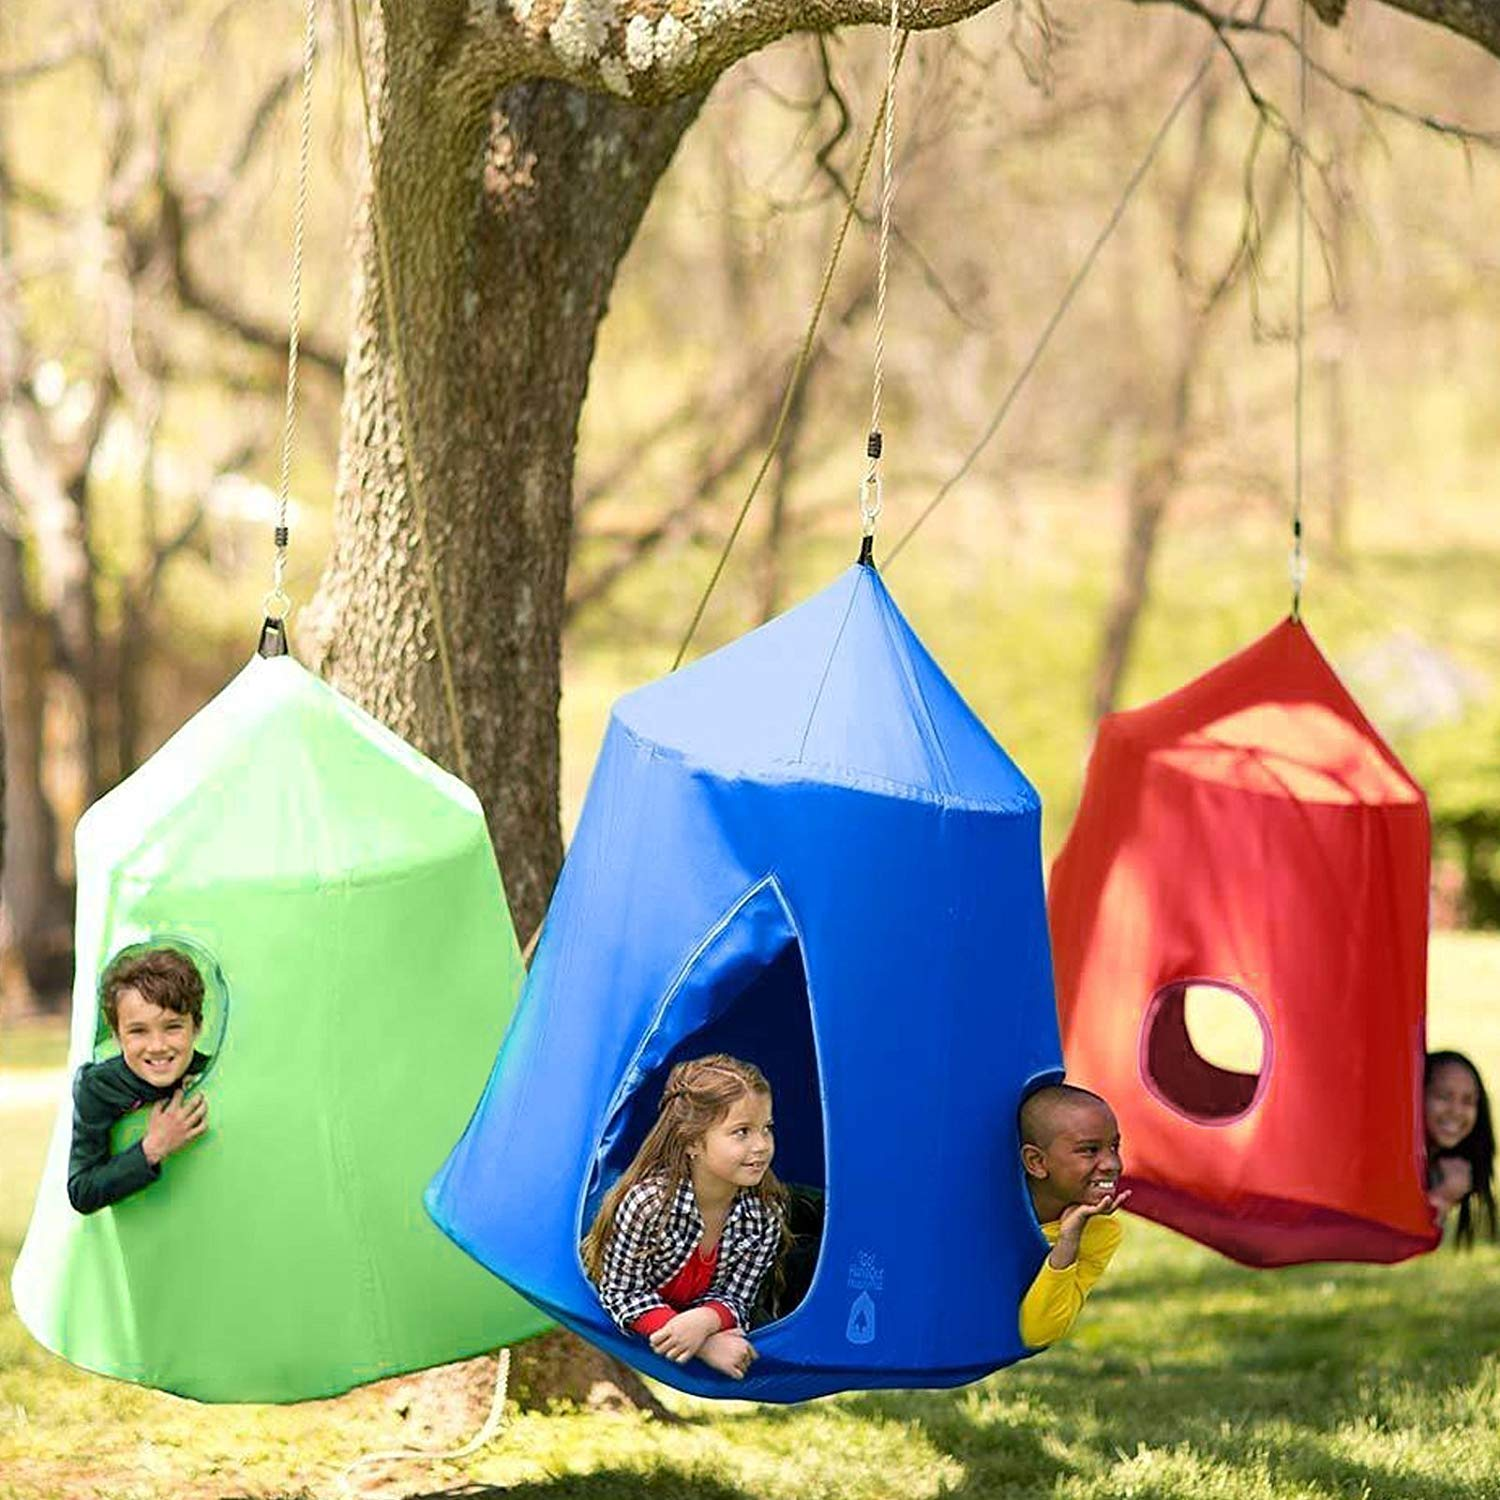 Mophorn Hanging Tree Tent 45 diam x 54 H Hanging Tent Swing Tent Waterproof Hanging Tree&Ceiling Hammock Tent Green Kids Outdoor Tents Playhouses (Blue) by Mophorn (Image #10)